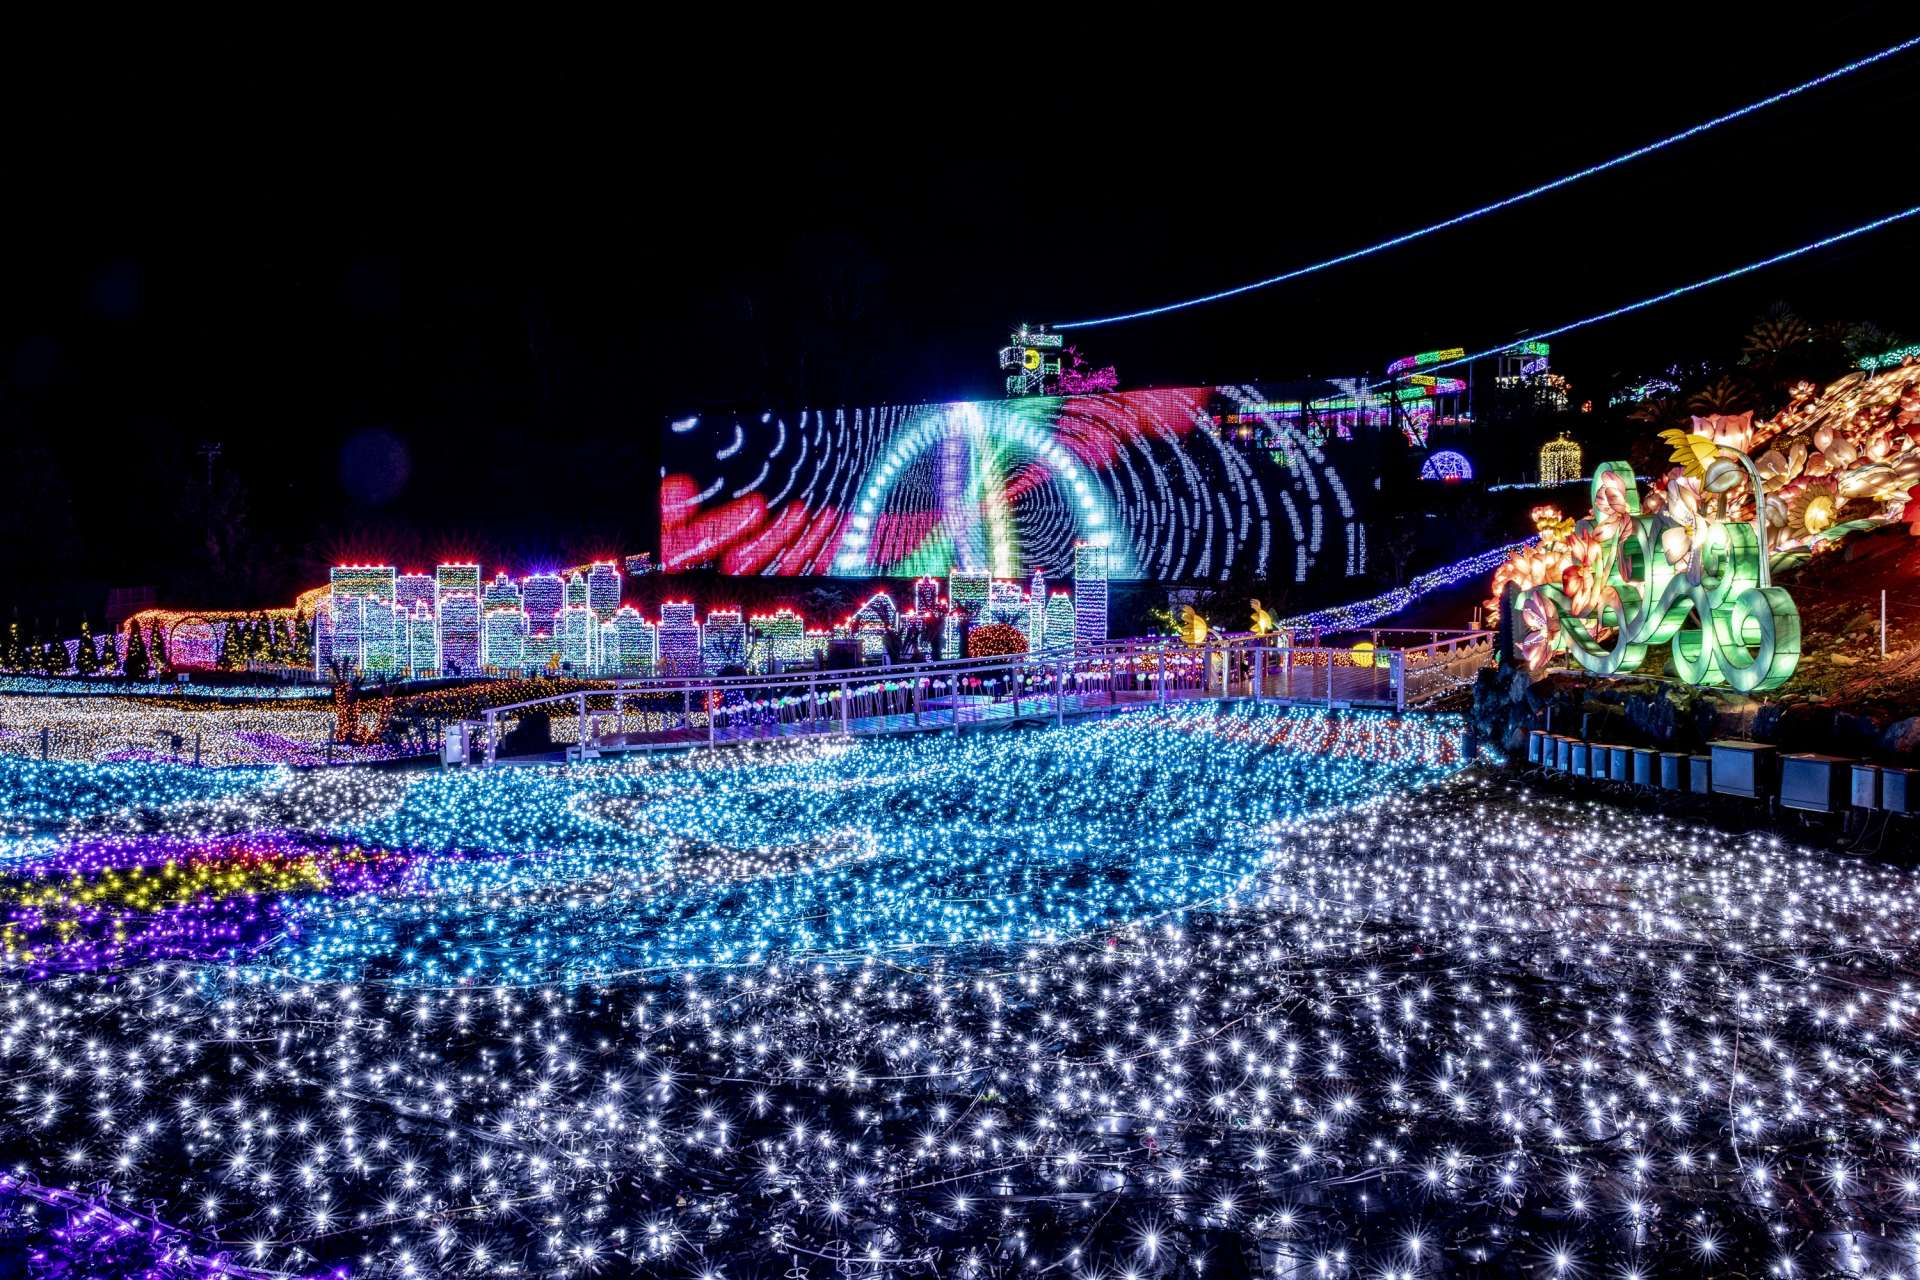 Hands-on illumination events have become a huge hit on social media, and the real thing is so much more fun than you can imagine!